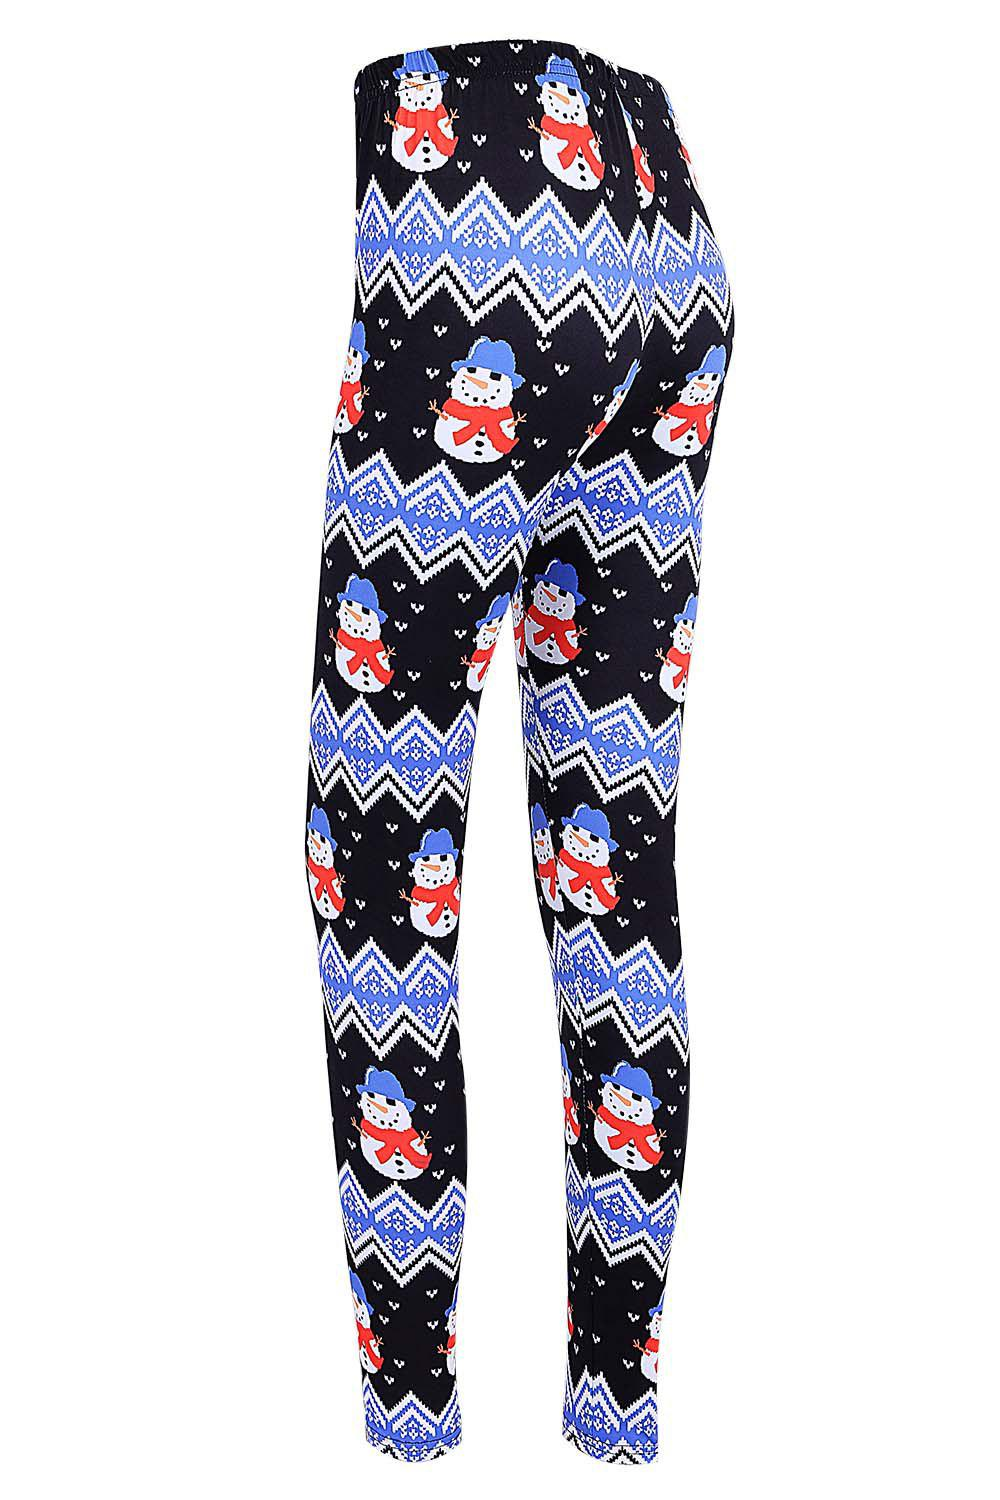 High Waisted Snowman Print Christmas Leggings - BLACK L